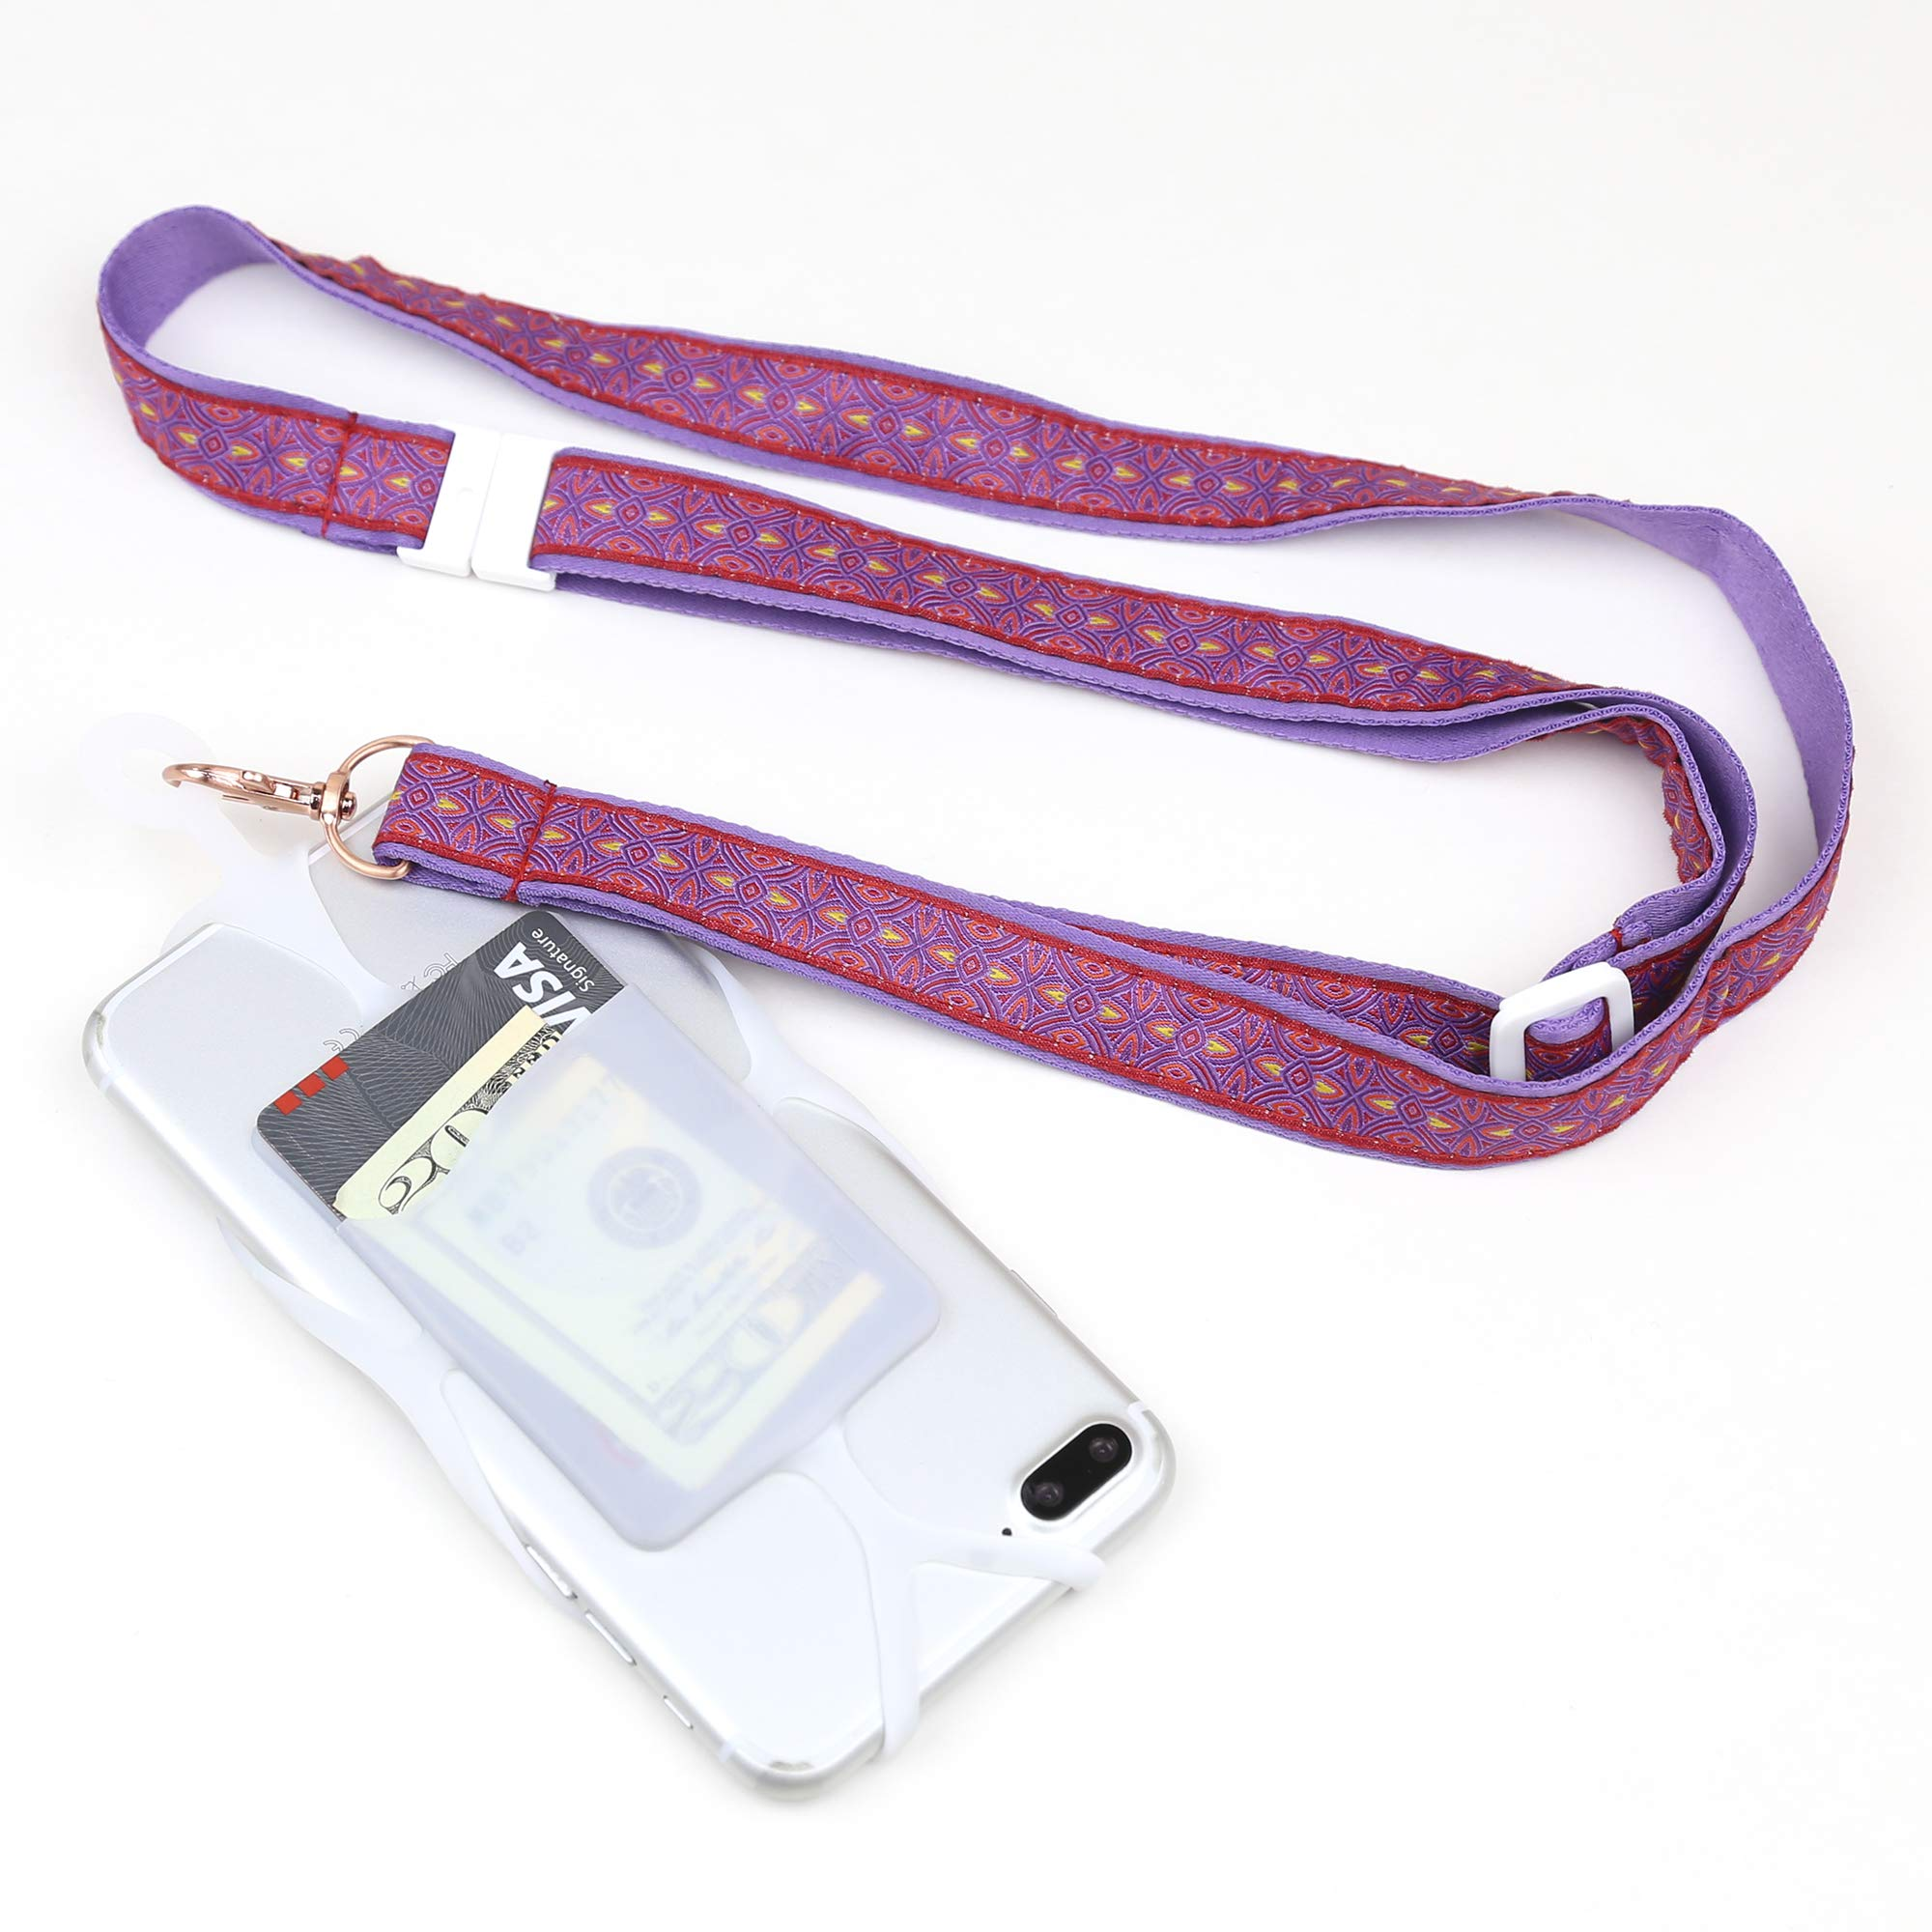 Cell Phone Lanyard Mobile Phone Case Holder with Card Pocket and Adjustable Neck Strap and Crossbody Strap for iPhone 11 Pro Max Xs Max Xr X 8 7 6 Plus Galaxy S10e S10 S9 S8 Plus Note 9 8 Pixel 3 XL